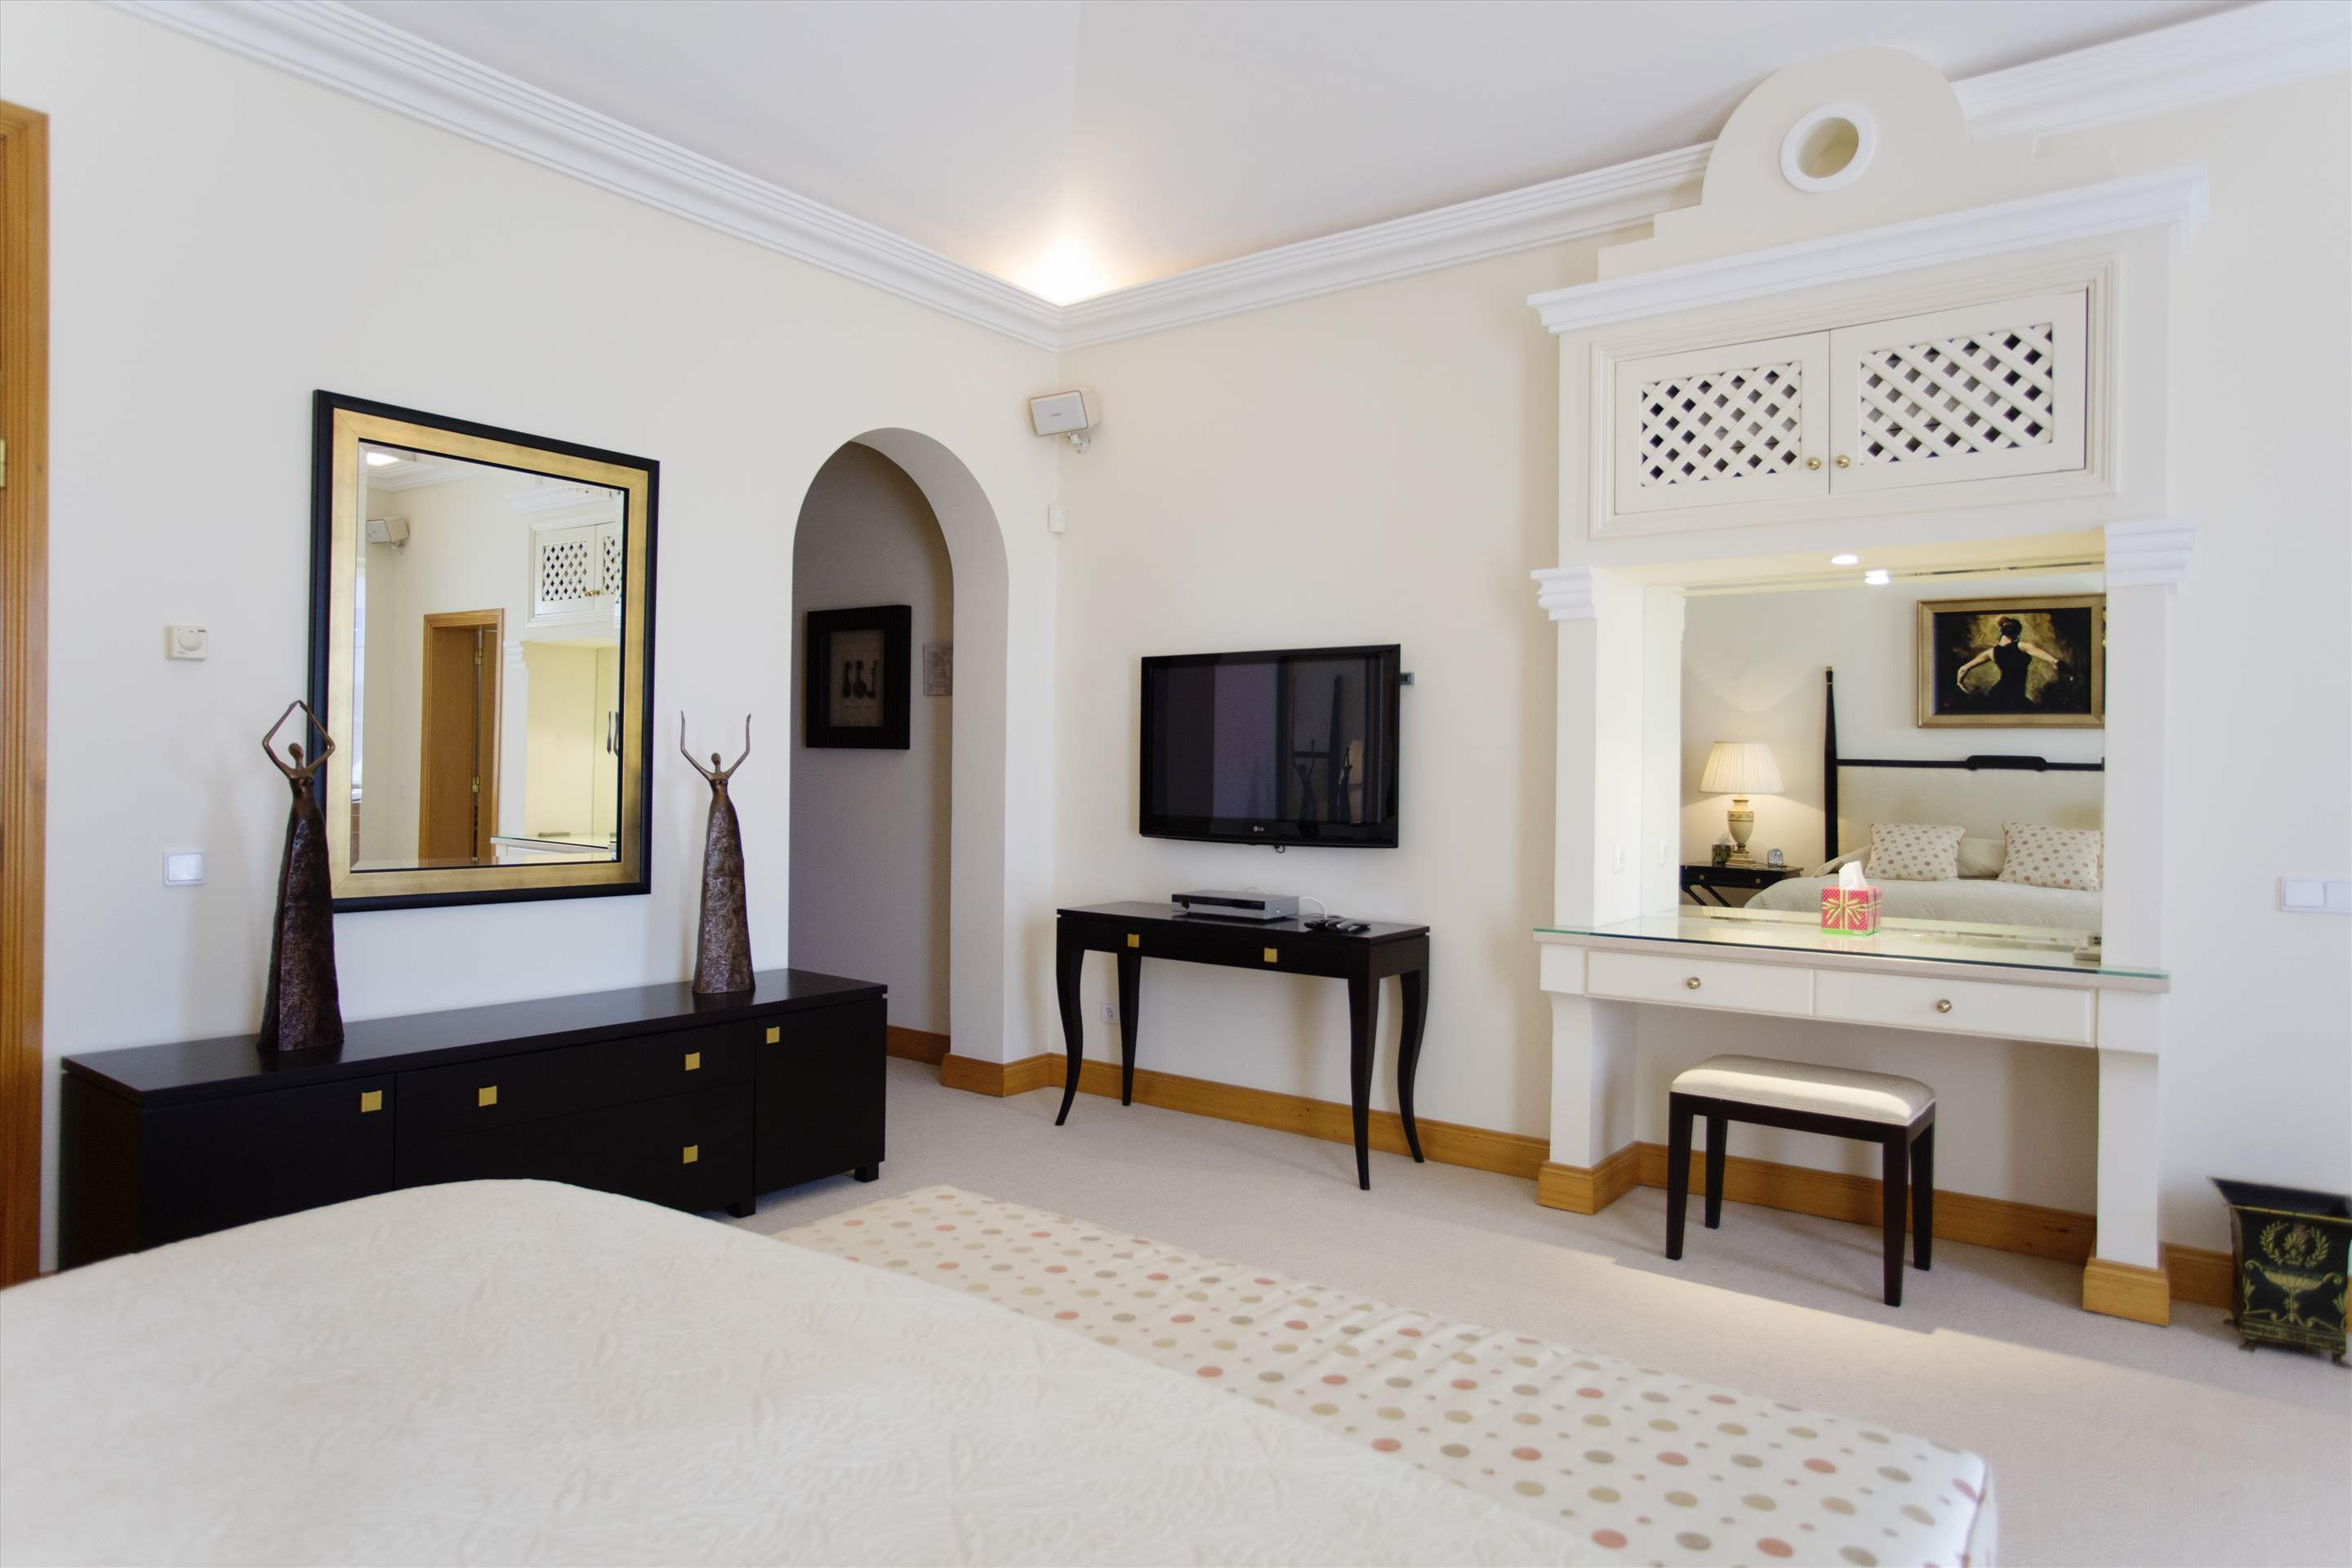 Villa Palmeiras Altas, 5 bedroom villa in Quinta do Lago, Algarve Photo #32